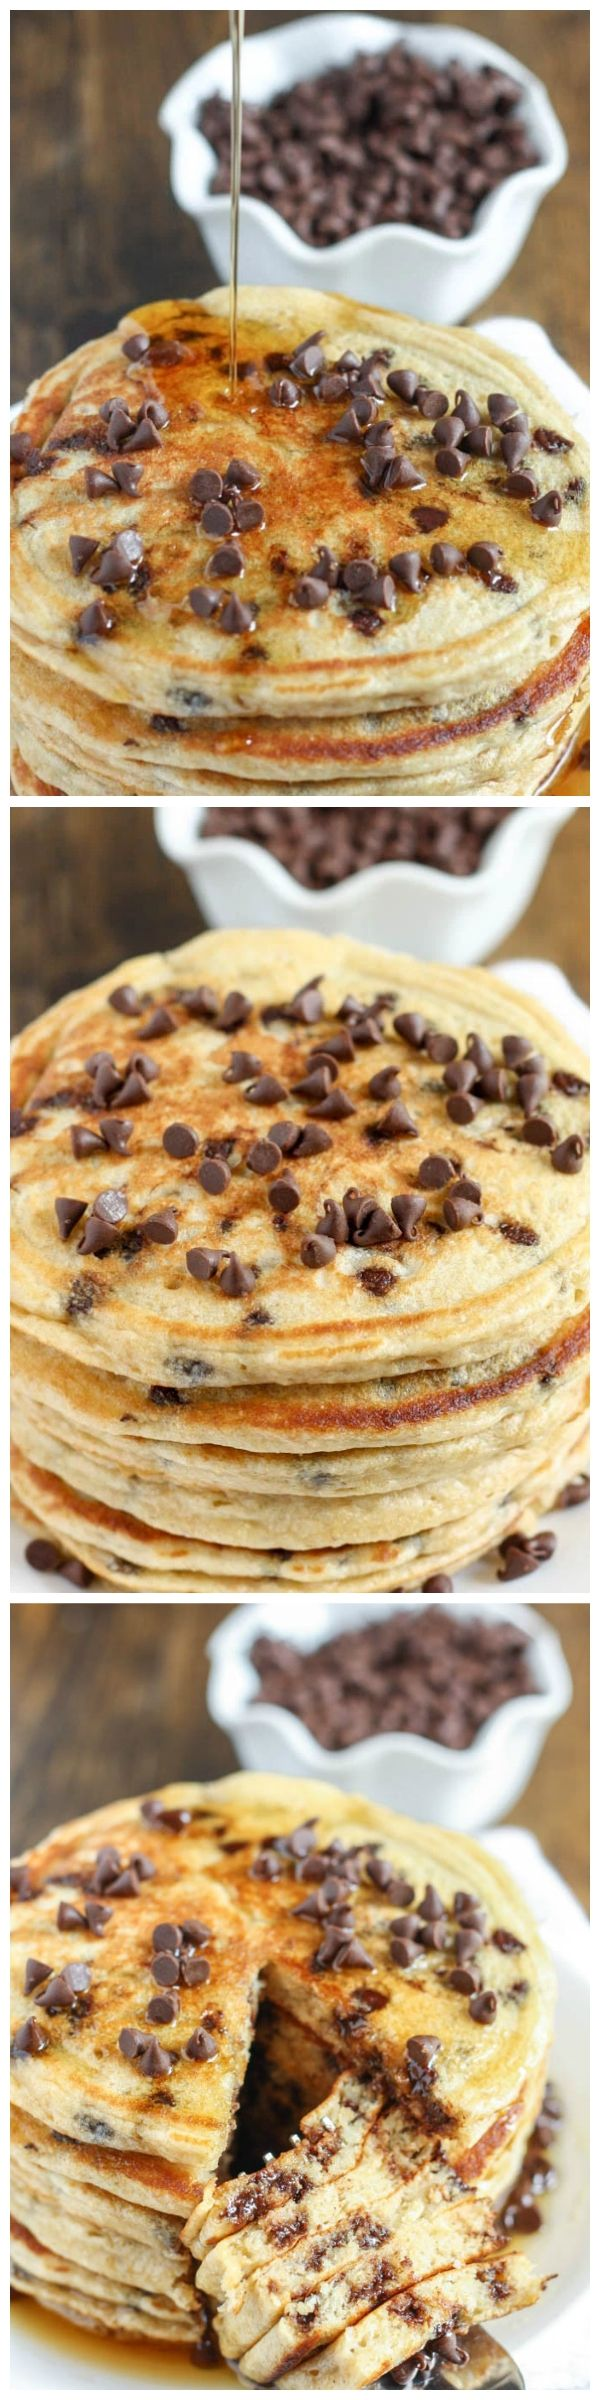 These chocolate chip pancakes make a perfect light and healthy breakfast and are packed with extra protein from the greek yogurt! Full recipe